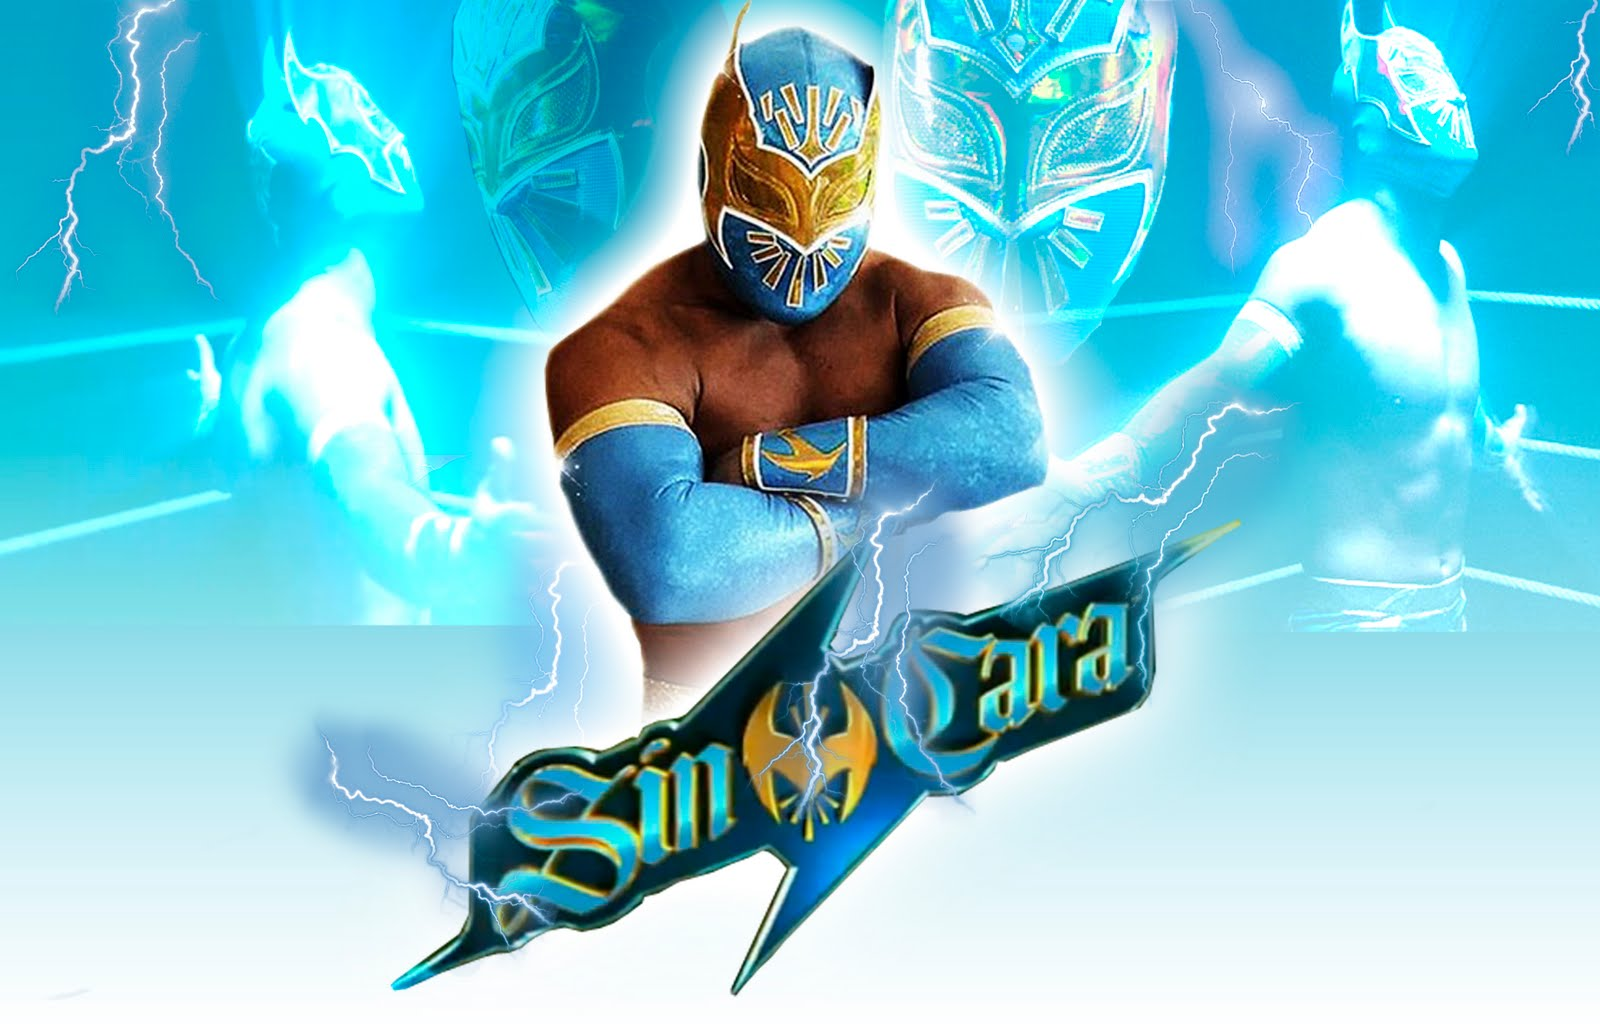 Mistico Sin Cara Images Wallpaper HD And Background Photos